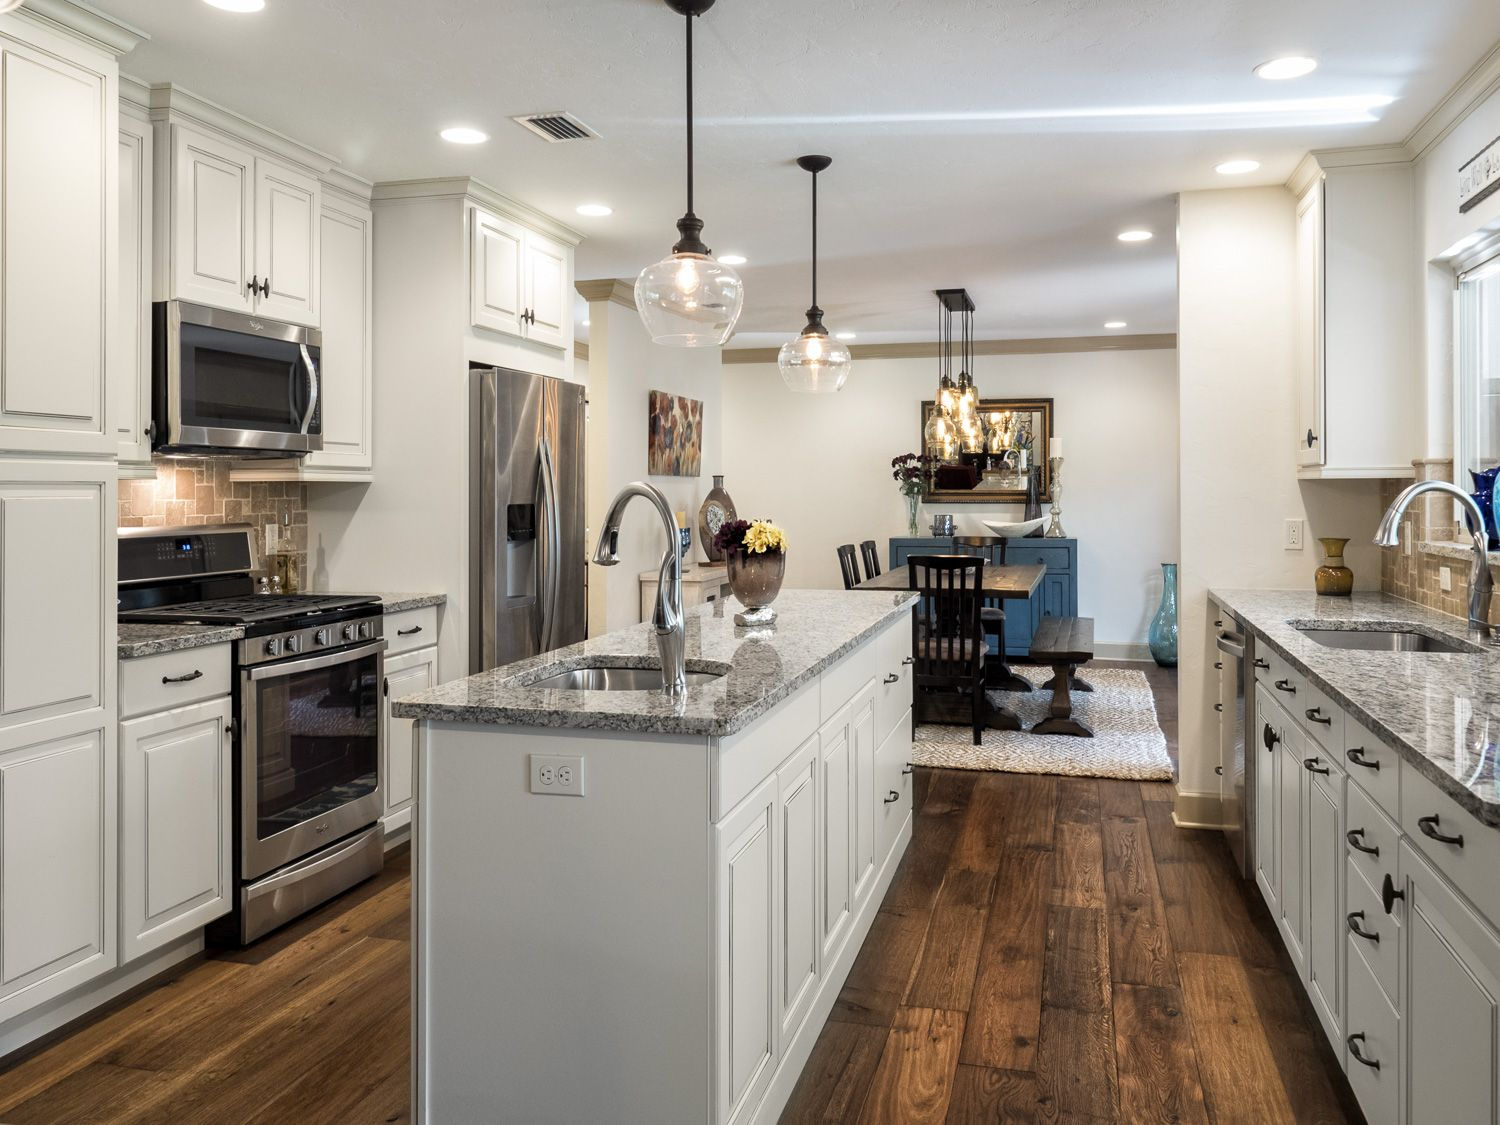 Galley Kitchen With Island Drop Pendants Wood Floors Cream Colored Cabinets Granite Counte Galley Kitchen Layout Galley Style Kitchen Galley Kitchen Design